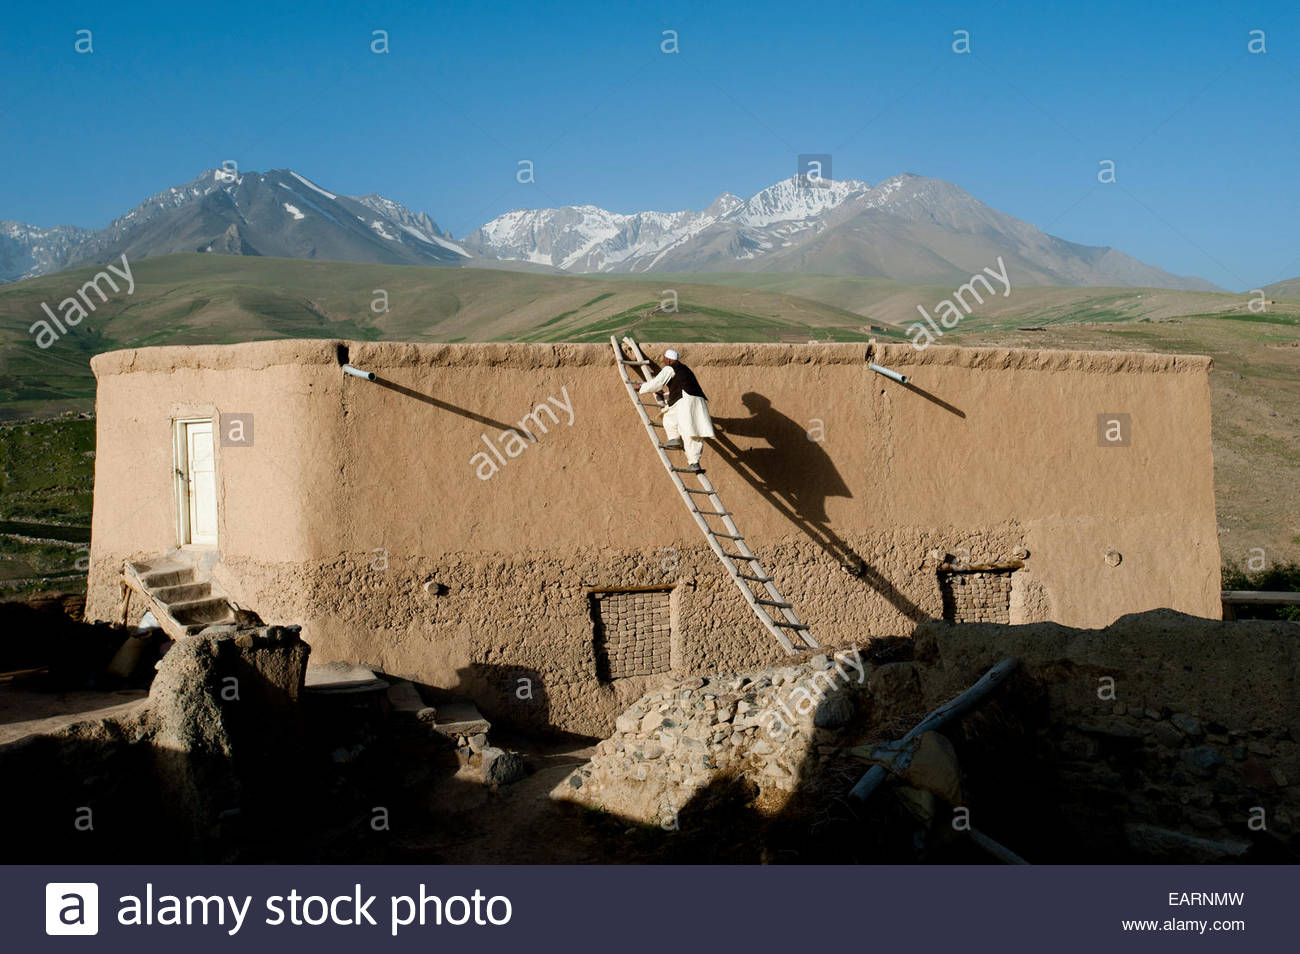 A farmer climbs up onto his roof to get a better view. - Stock Image